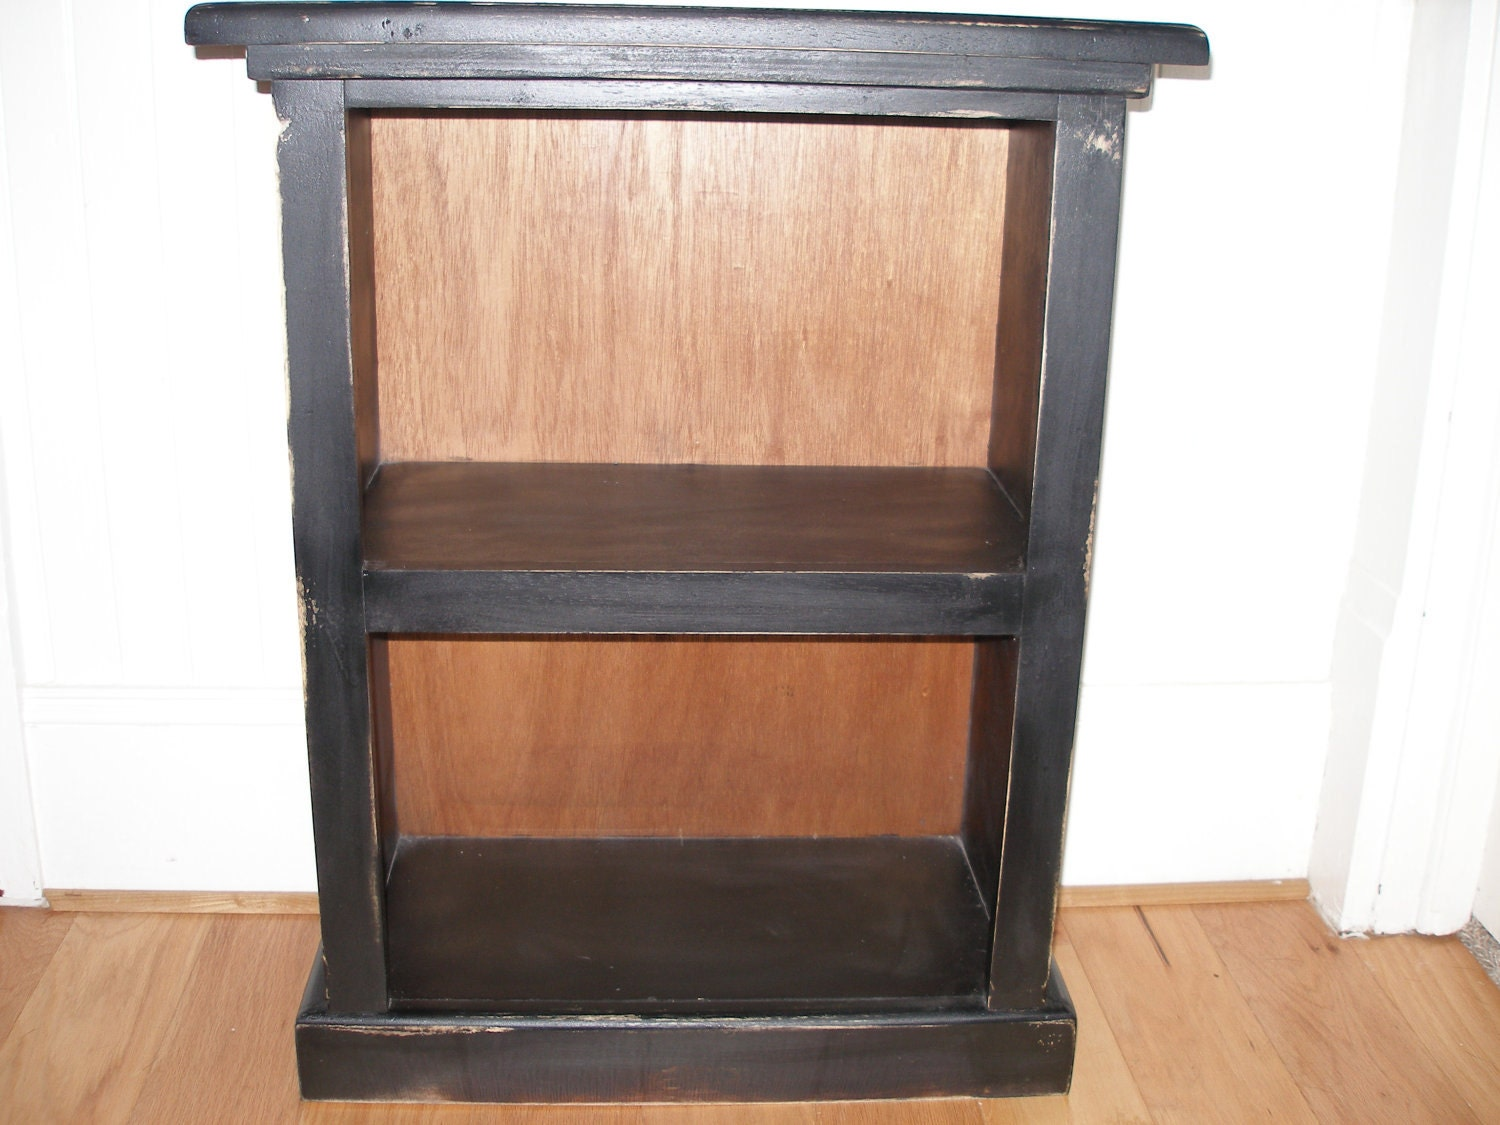 small two shelf bookcase by rusticfurnishings on etsy. Black Bedroom Furniture Sets. Home Design Ideas